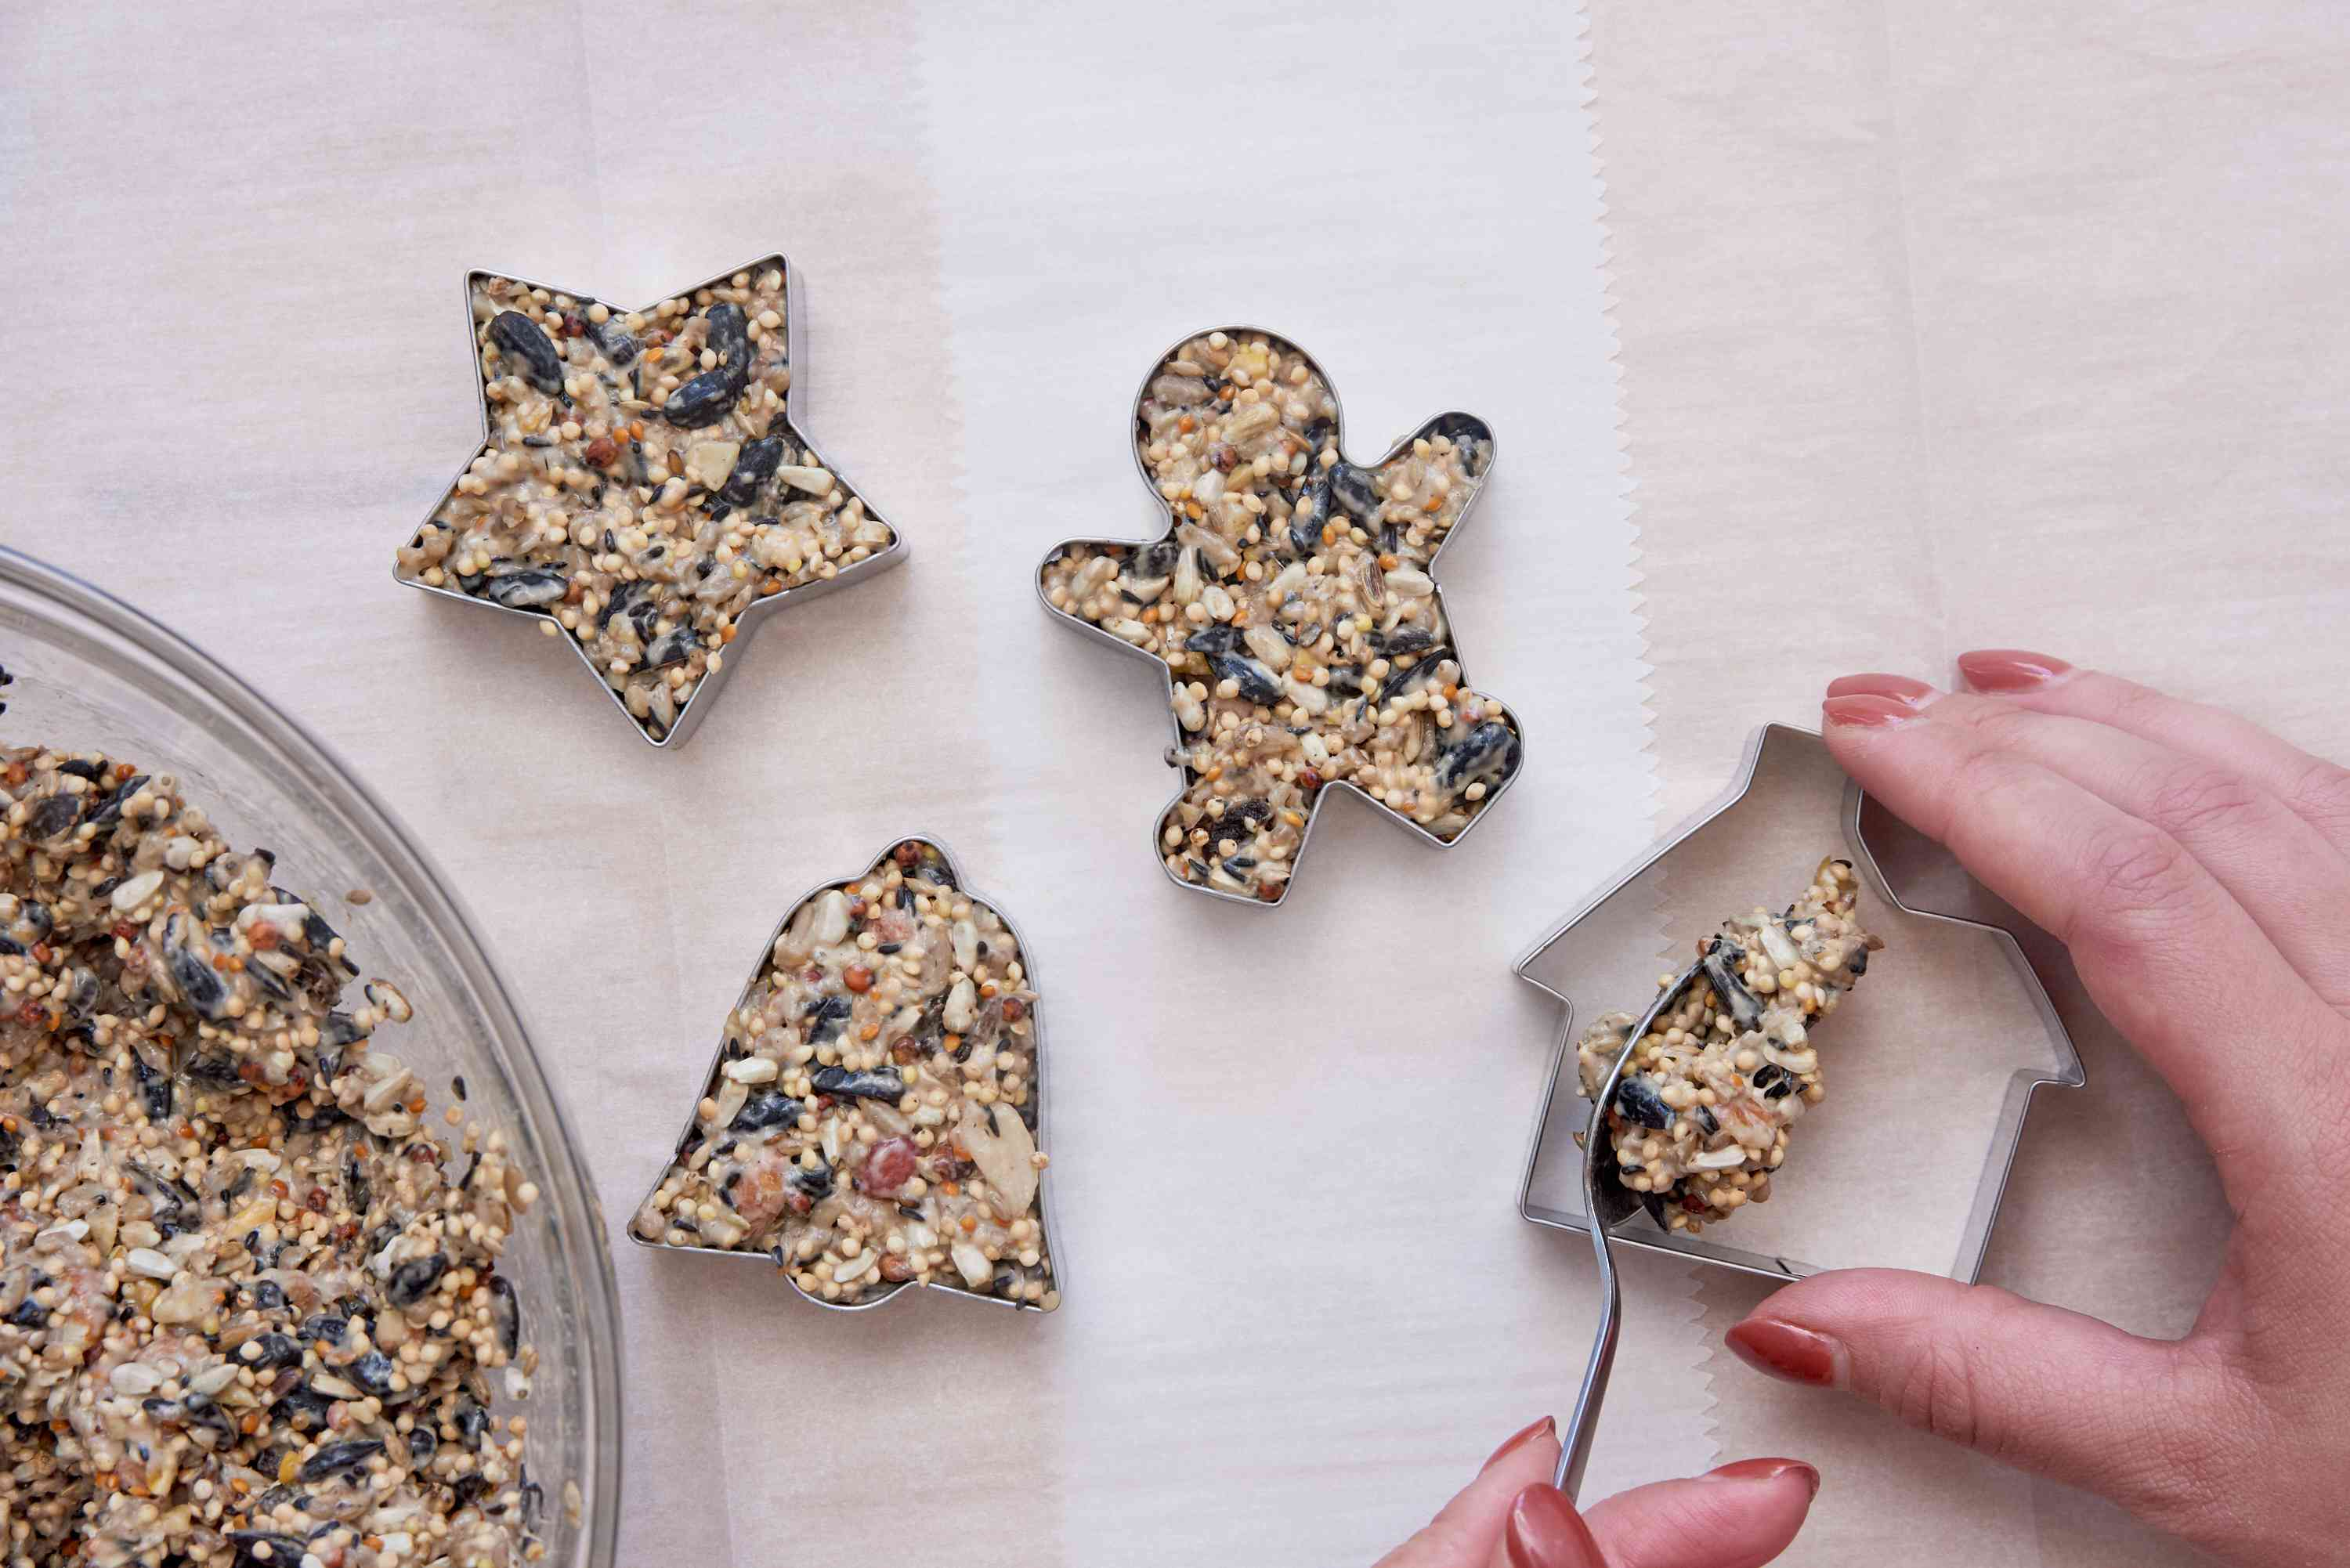 filling cookie cutters with birdseed mixture